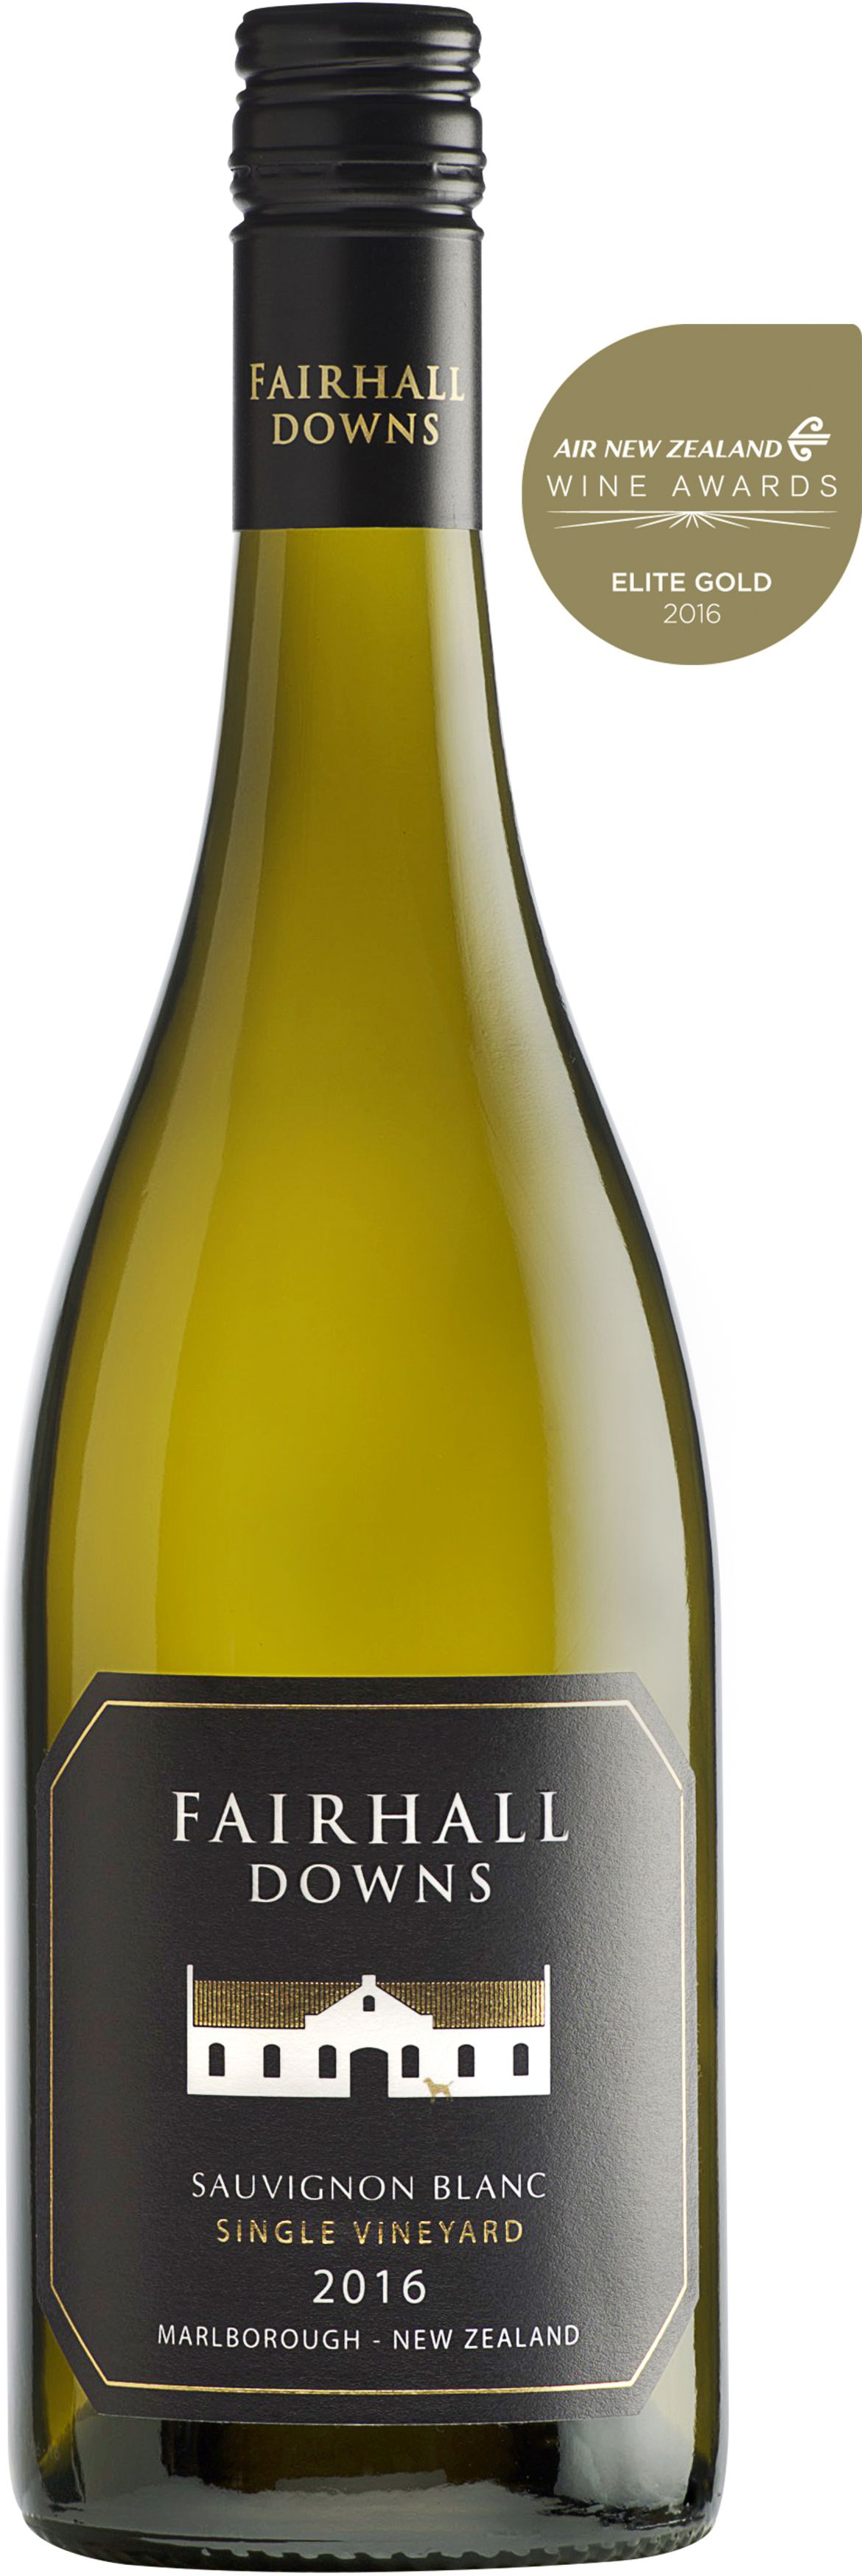 Fairhall Downs Single Vienyard Sauvignon Blanc, Marlborough 2016, New Zealand